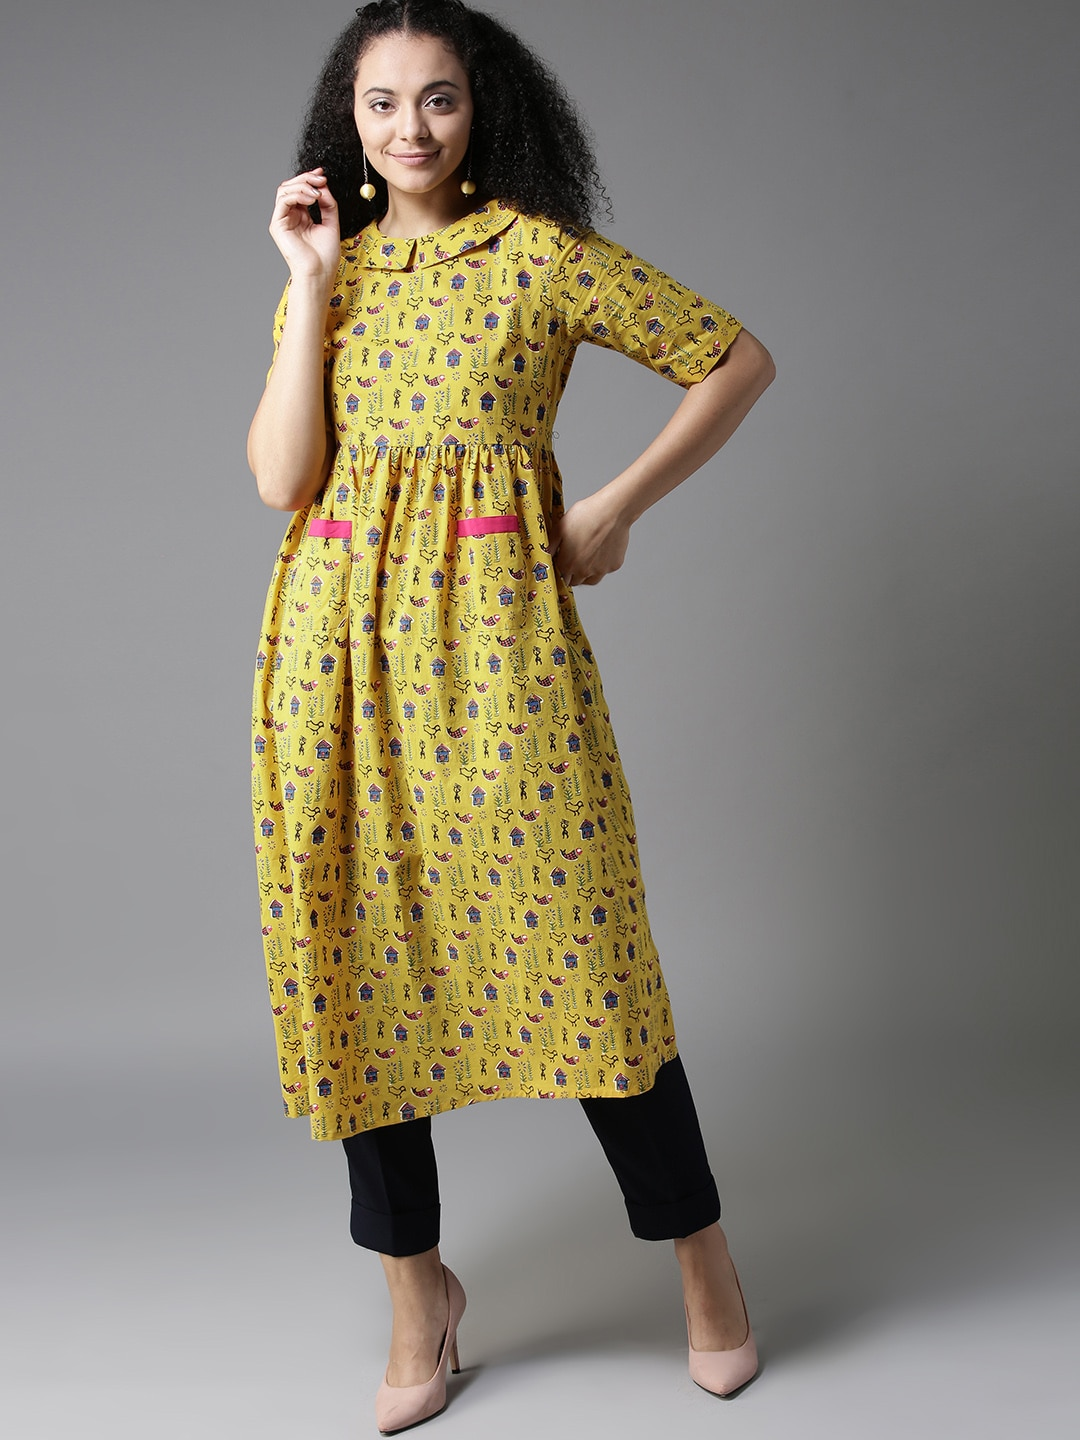 Fusion Wear - Online Shopping of Indian Fusion Wear  37a583f2a